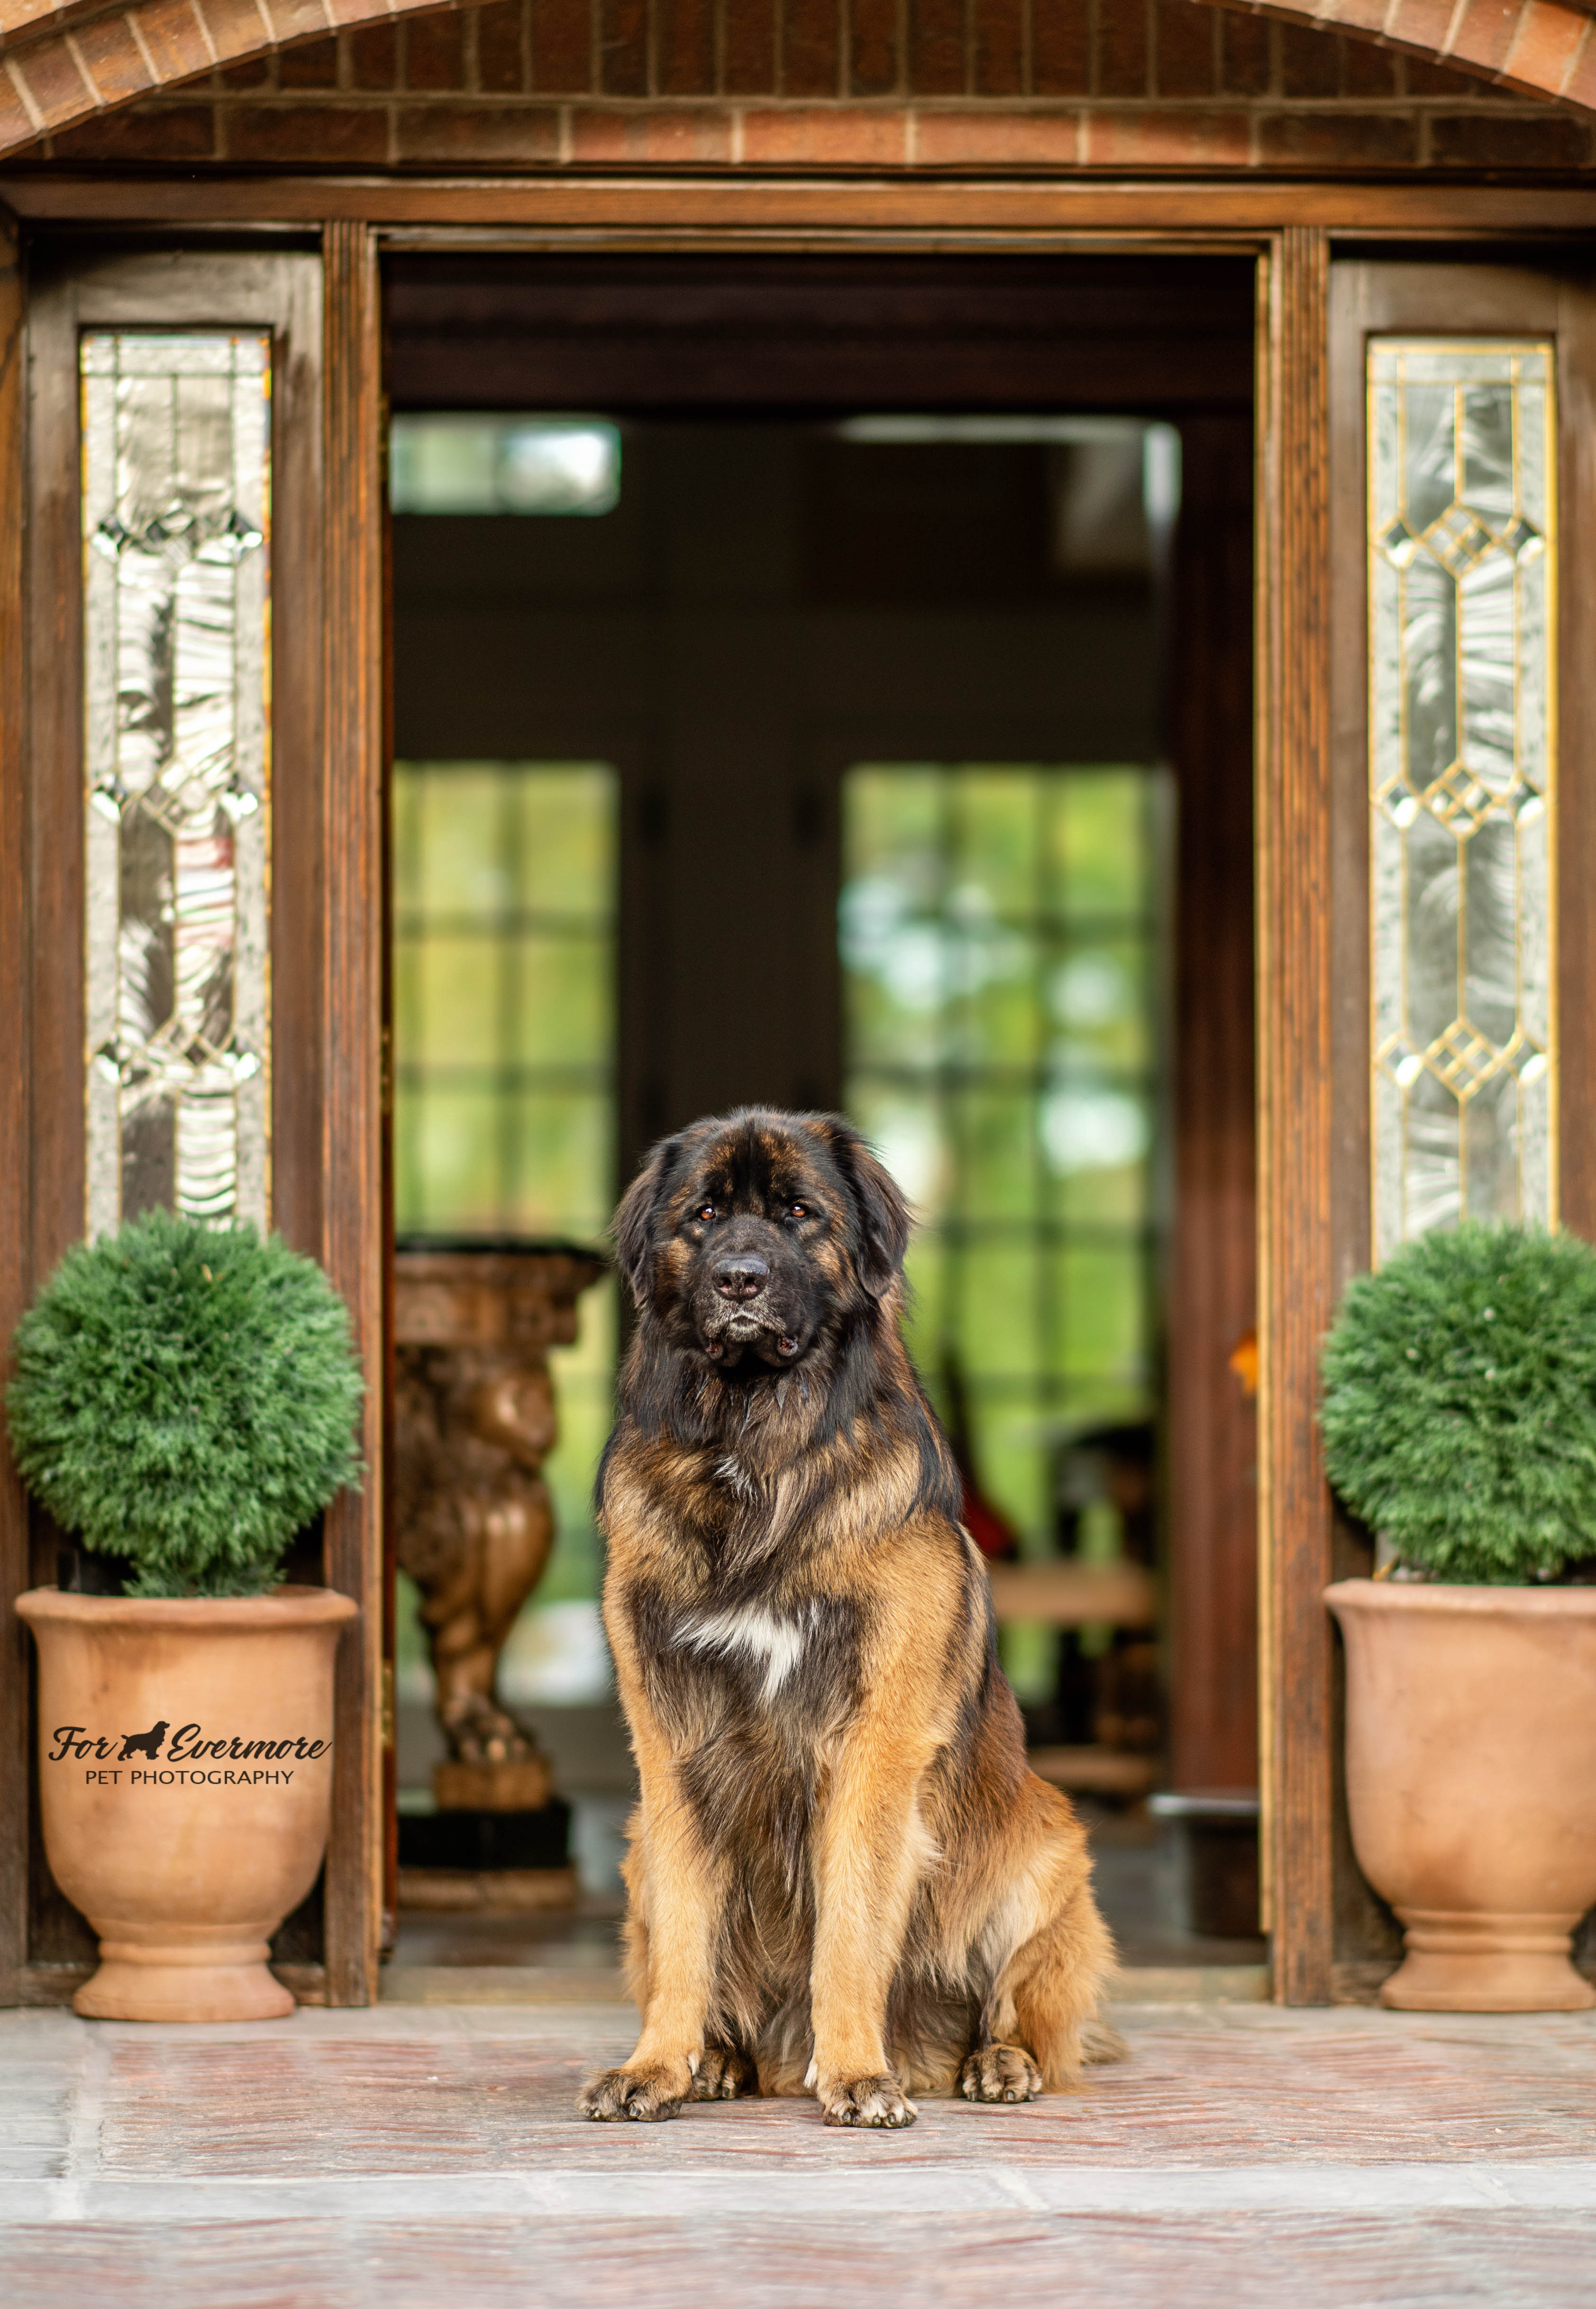 Jake the Leonberger